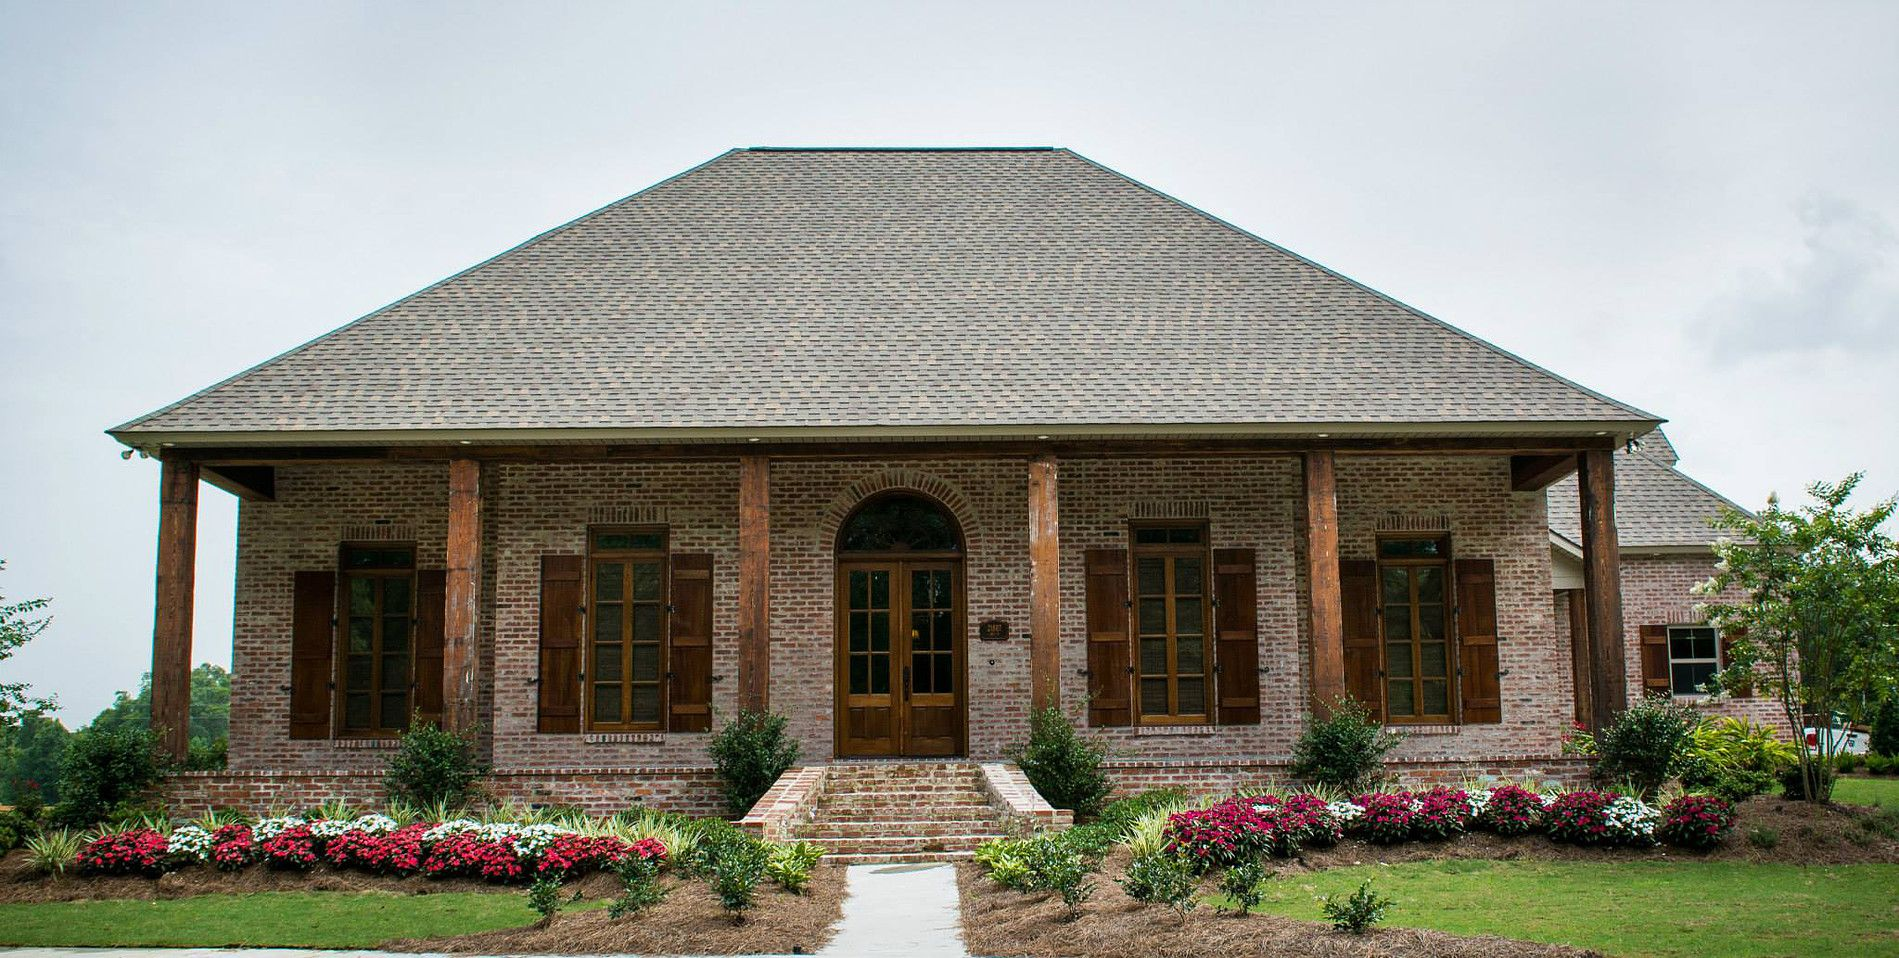 Madden Home Design   Acadian House Plans, French Country House Plans |  Photo Gallery